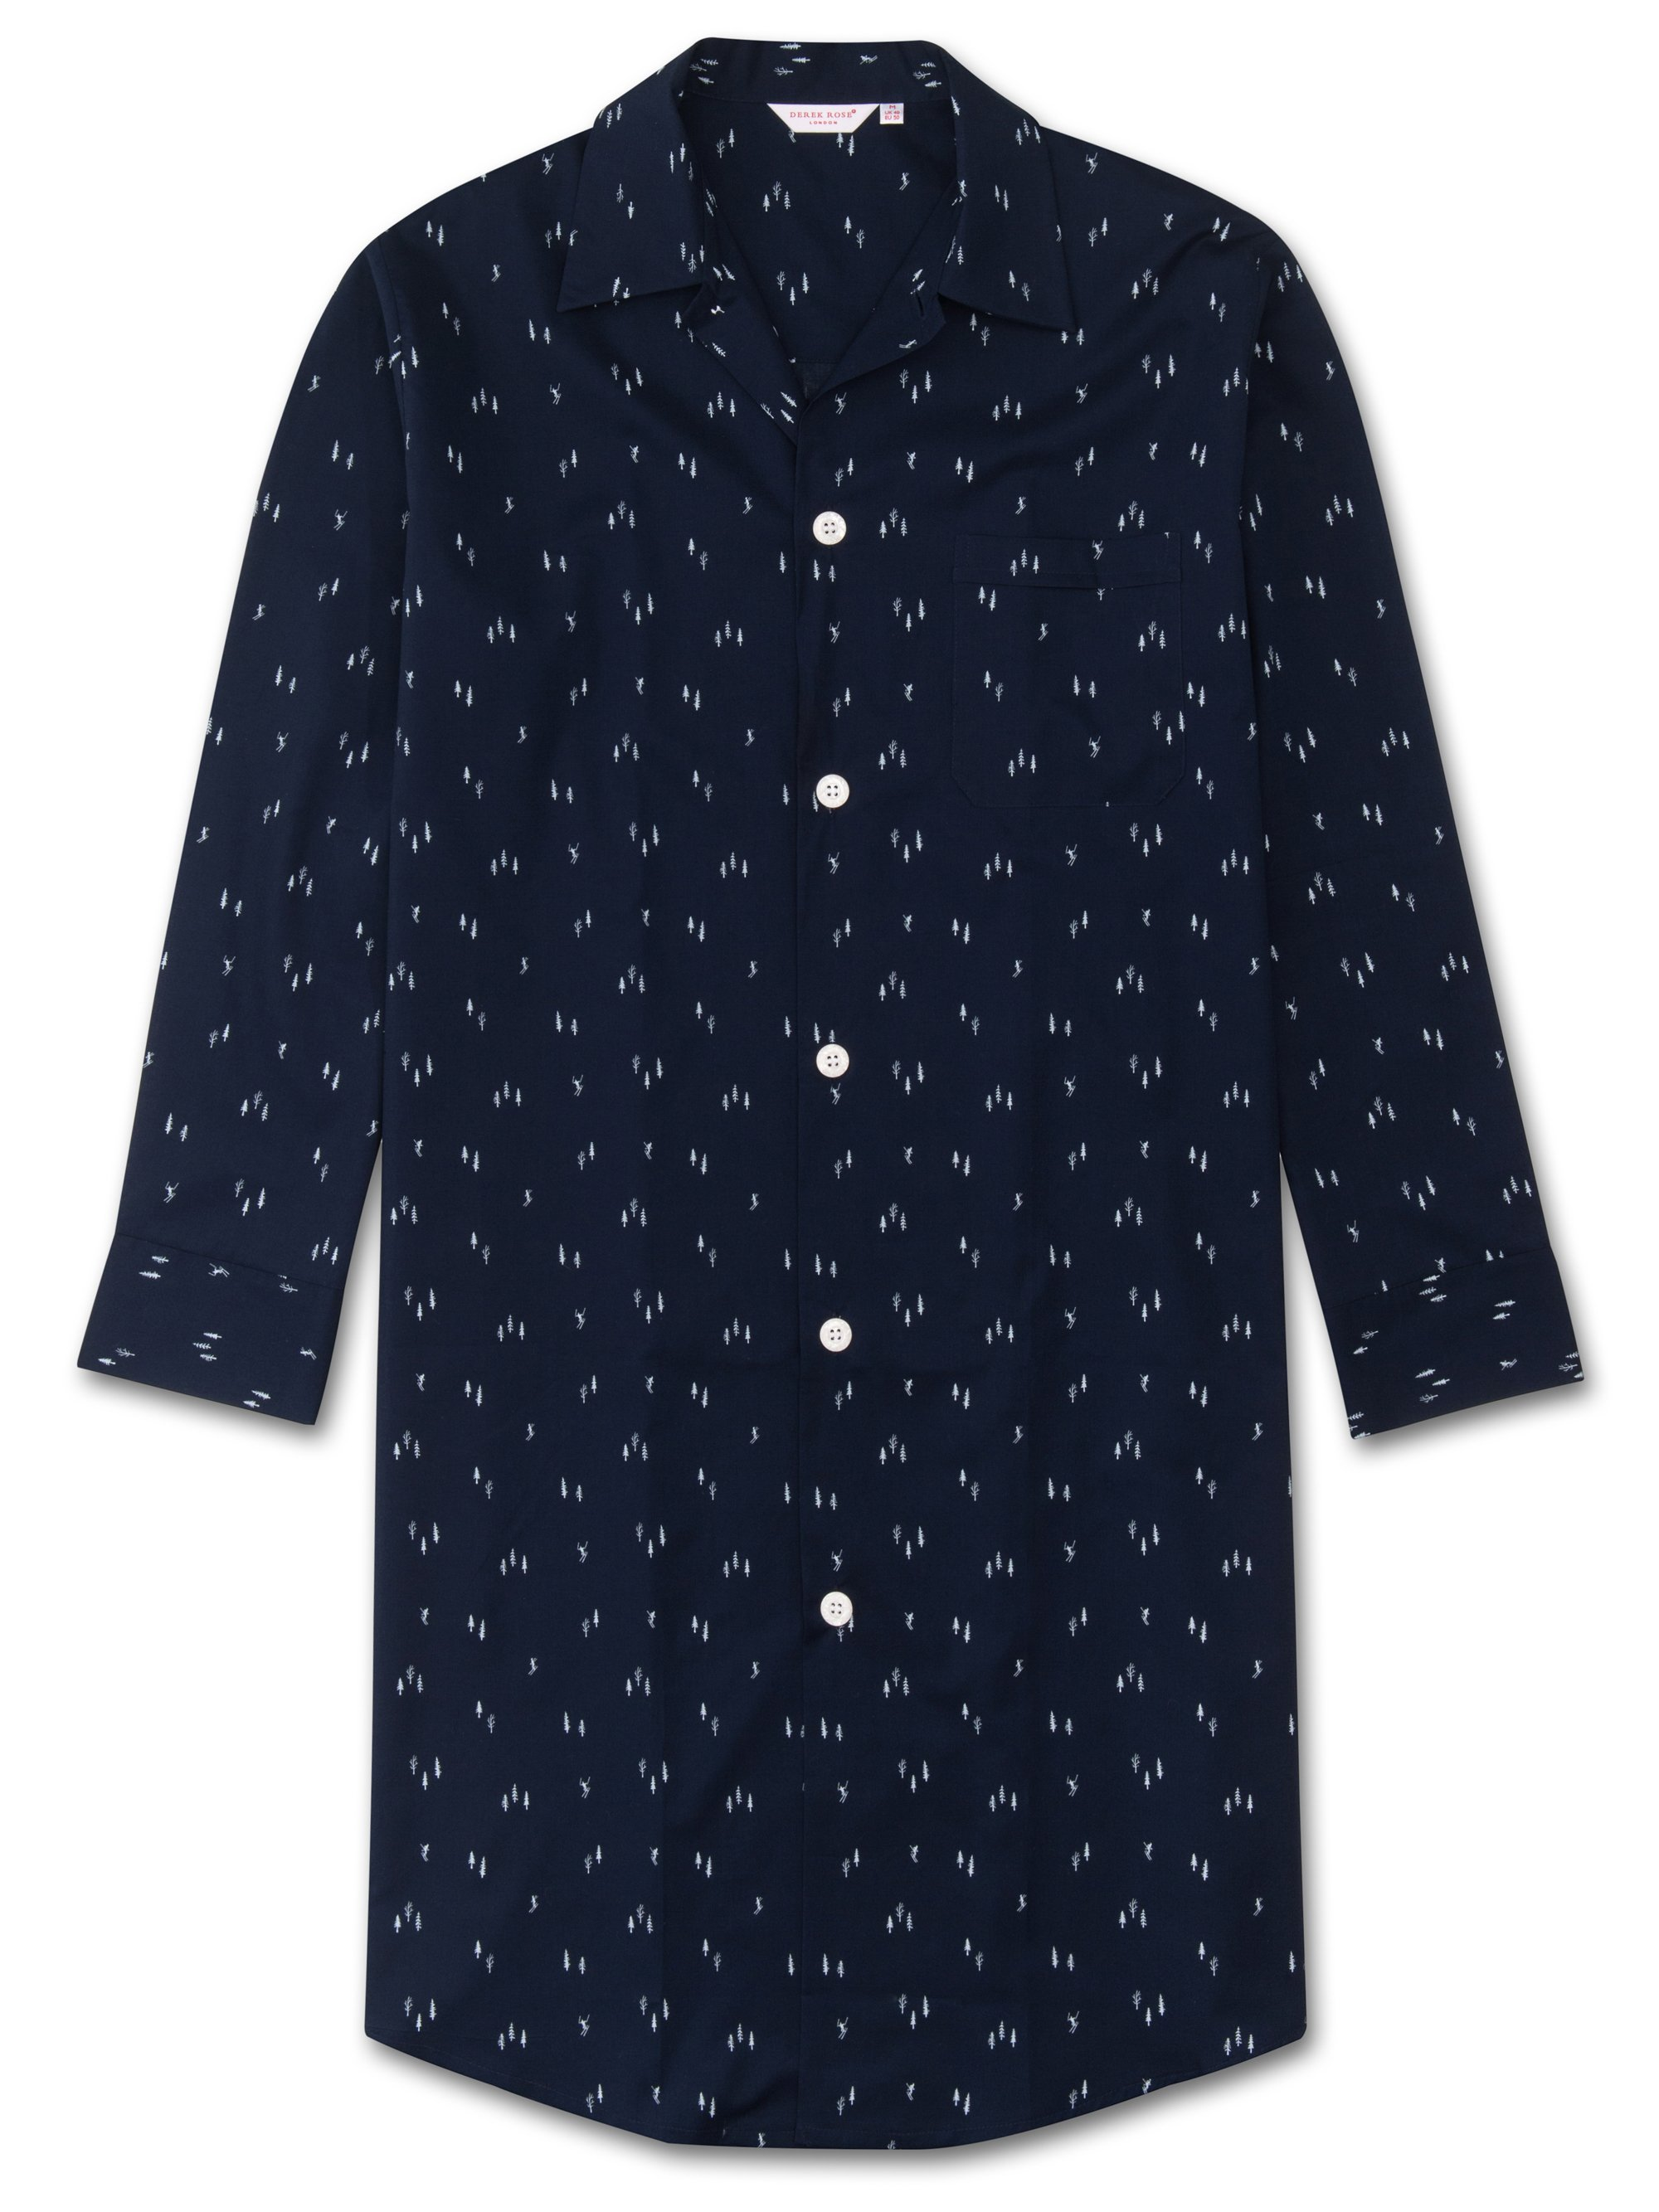 Men's Button-Through Nightshirt Nelson 55 Cotton Batiste Navy